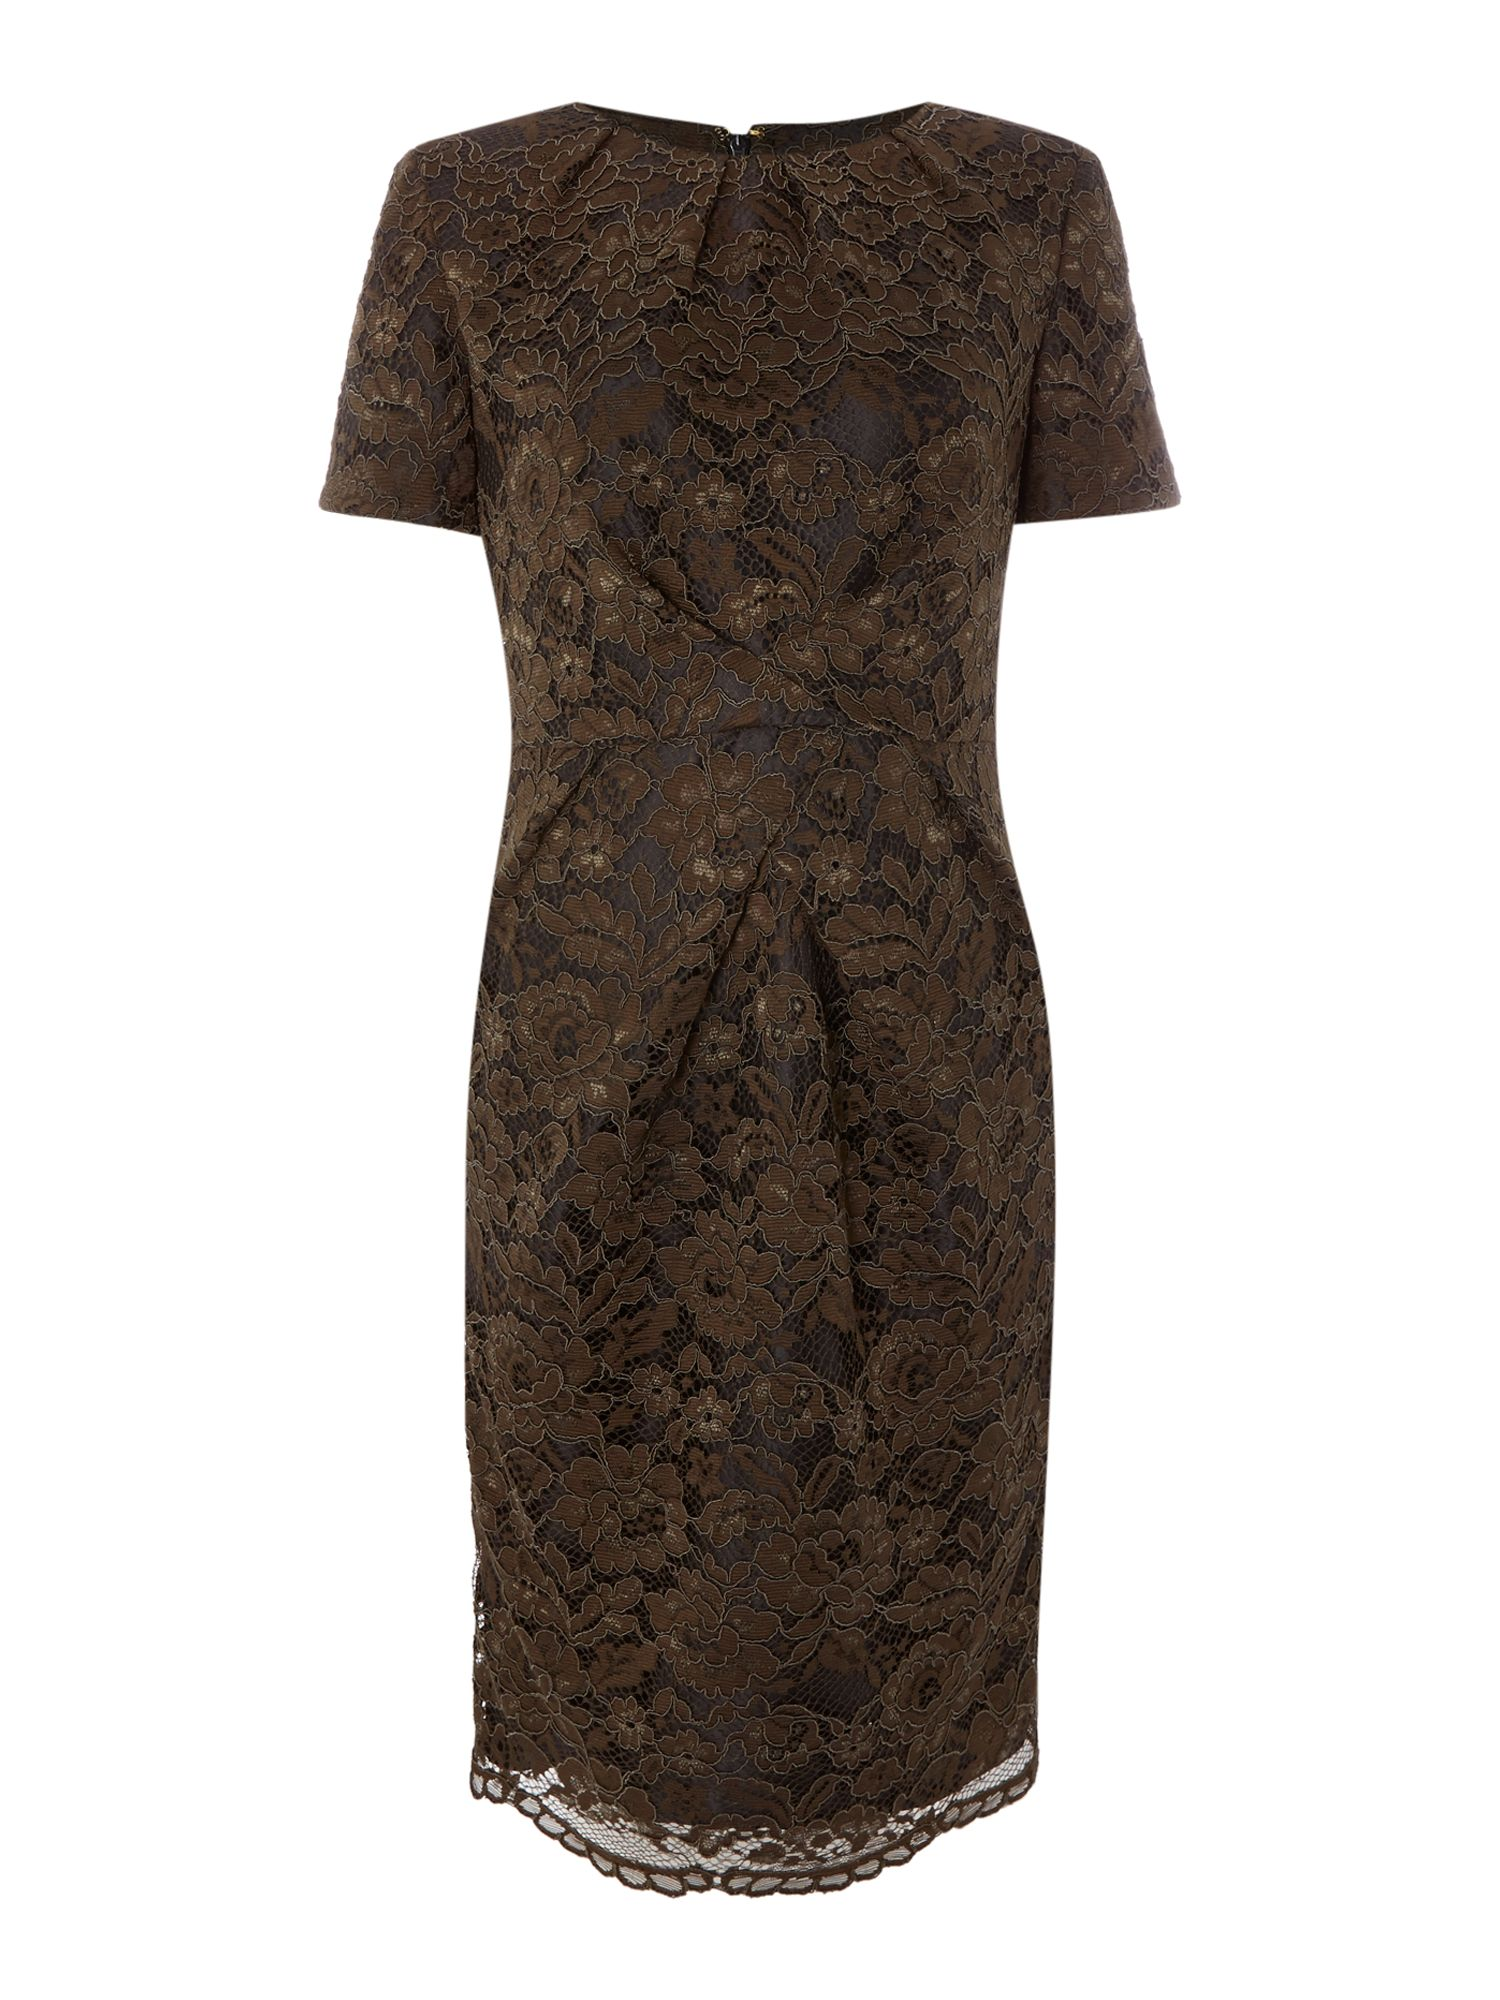 Linea lace dress house of fraser